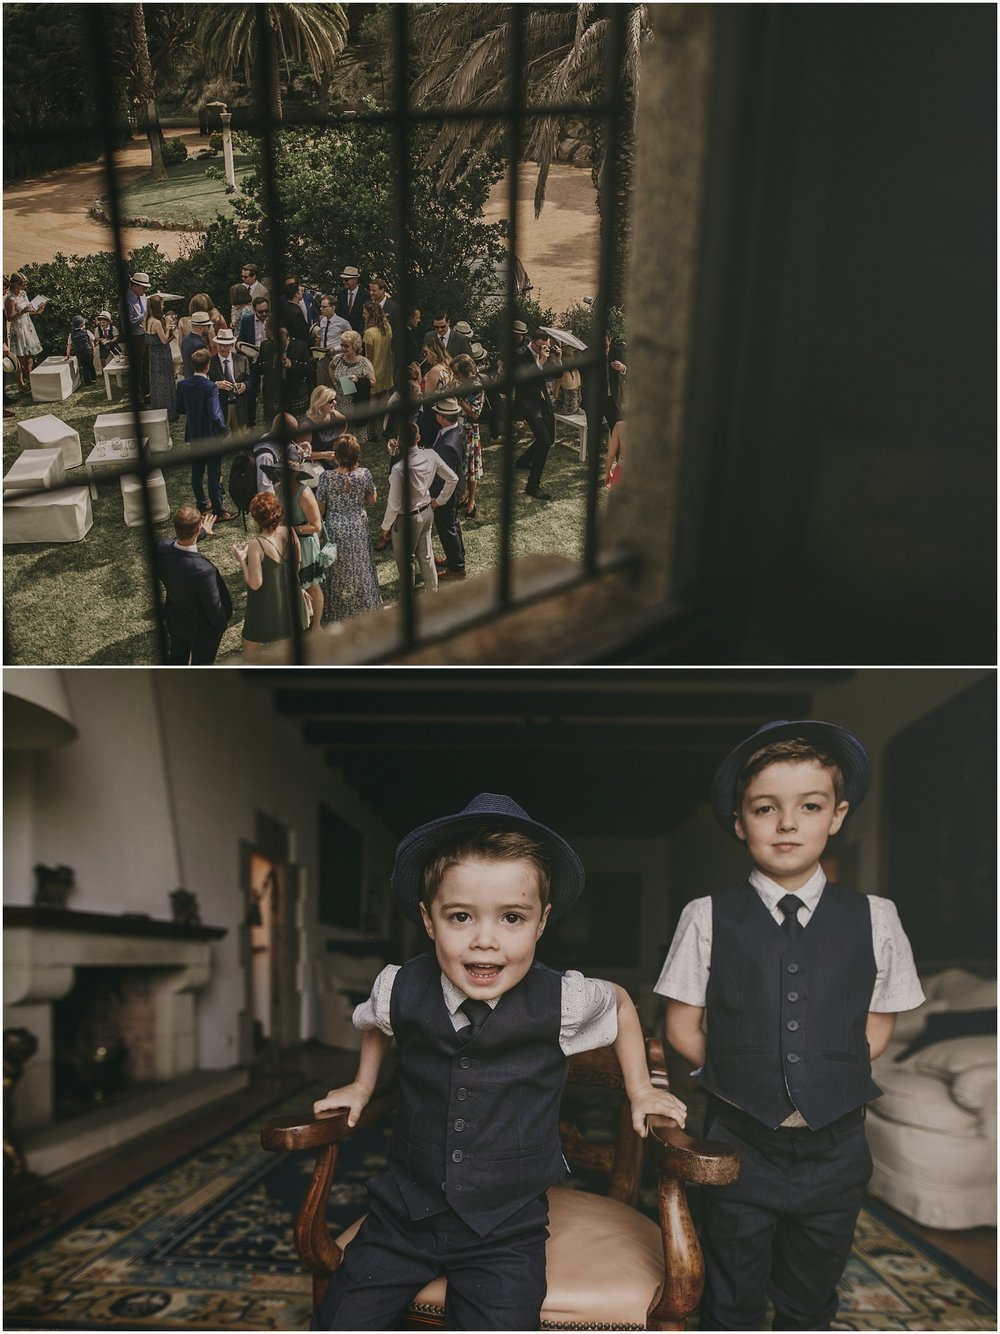 Sam y Angus girona wedding photographer025.JPG